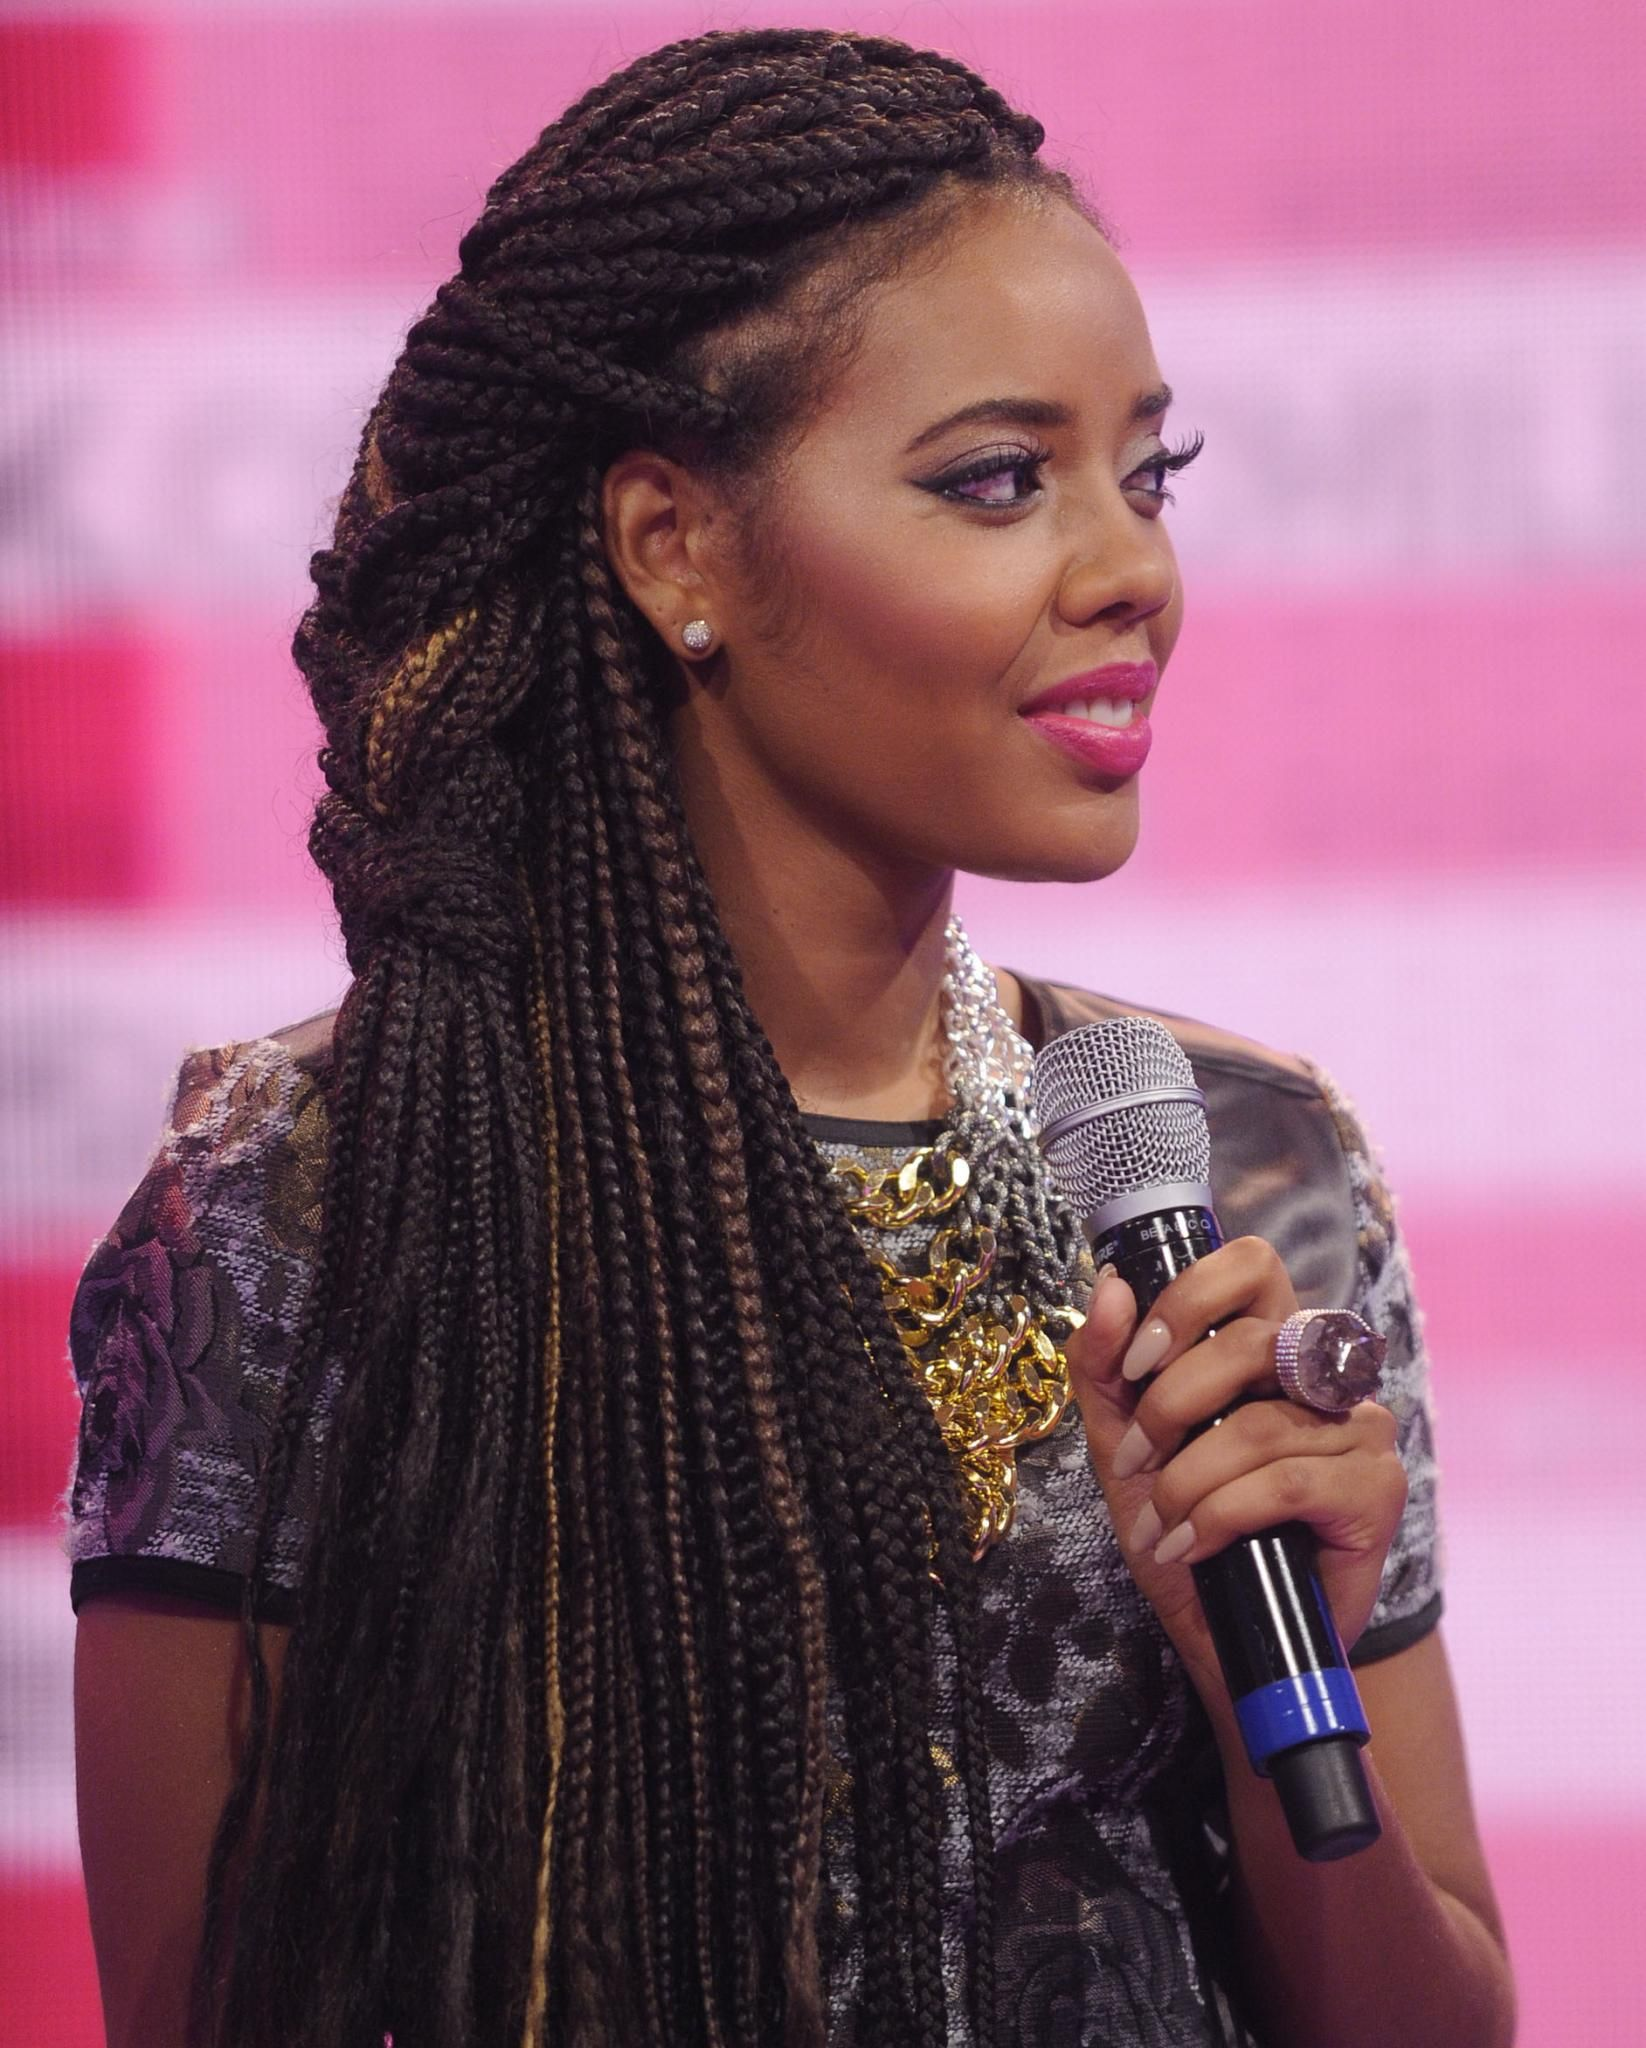 Angela Simmons rocks a braided style with subtle highlights